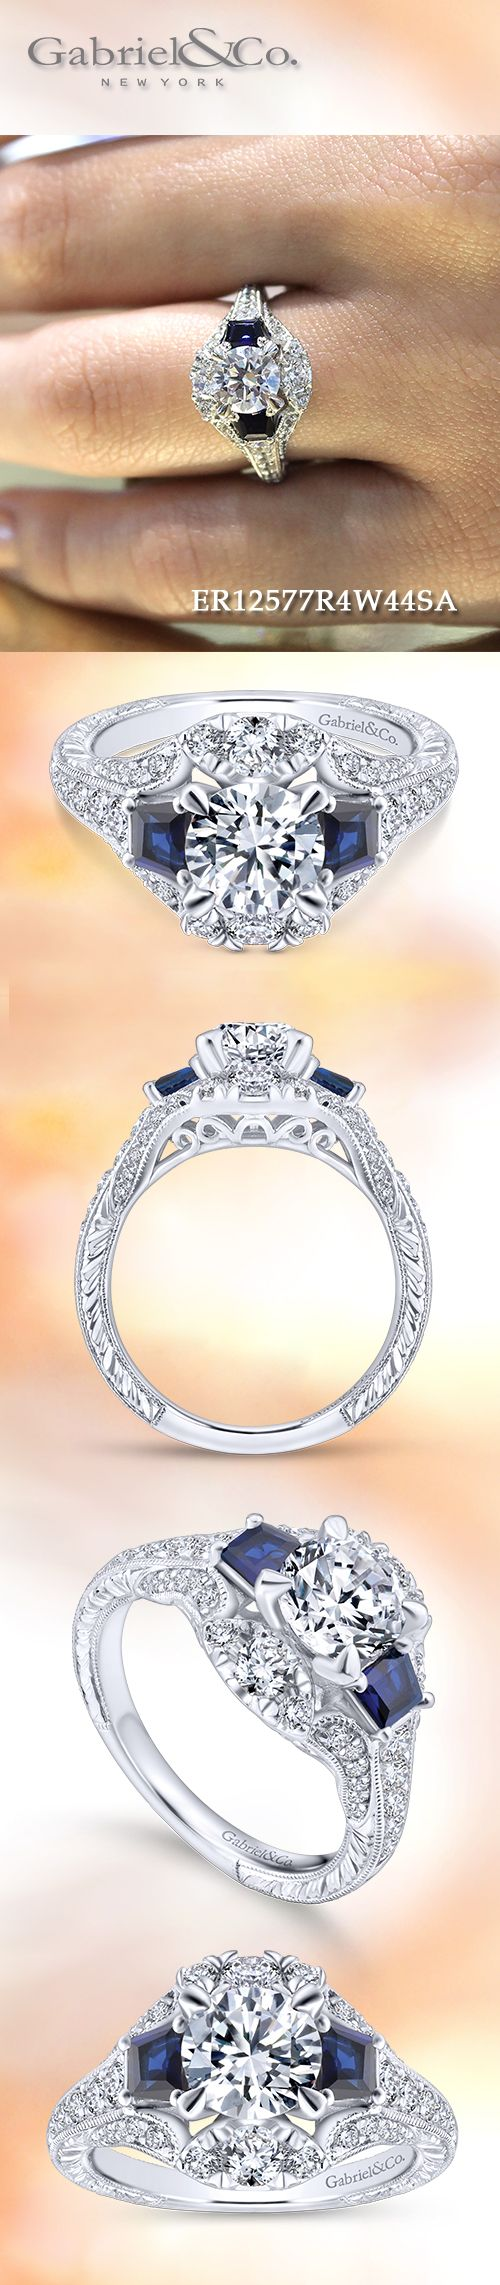 Gabriel & Co. - Voted #1 Most Preferred Bridal Brand. This luxurious three stone engagement ring has a round cut center stone joined by a pair of rich blue sapphires.